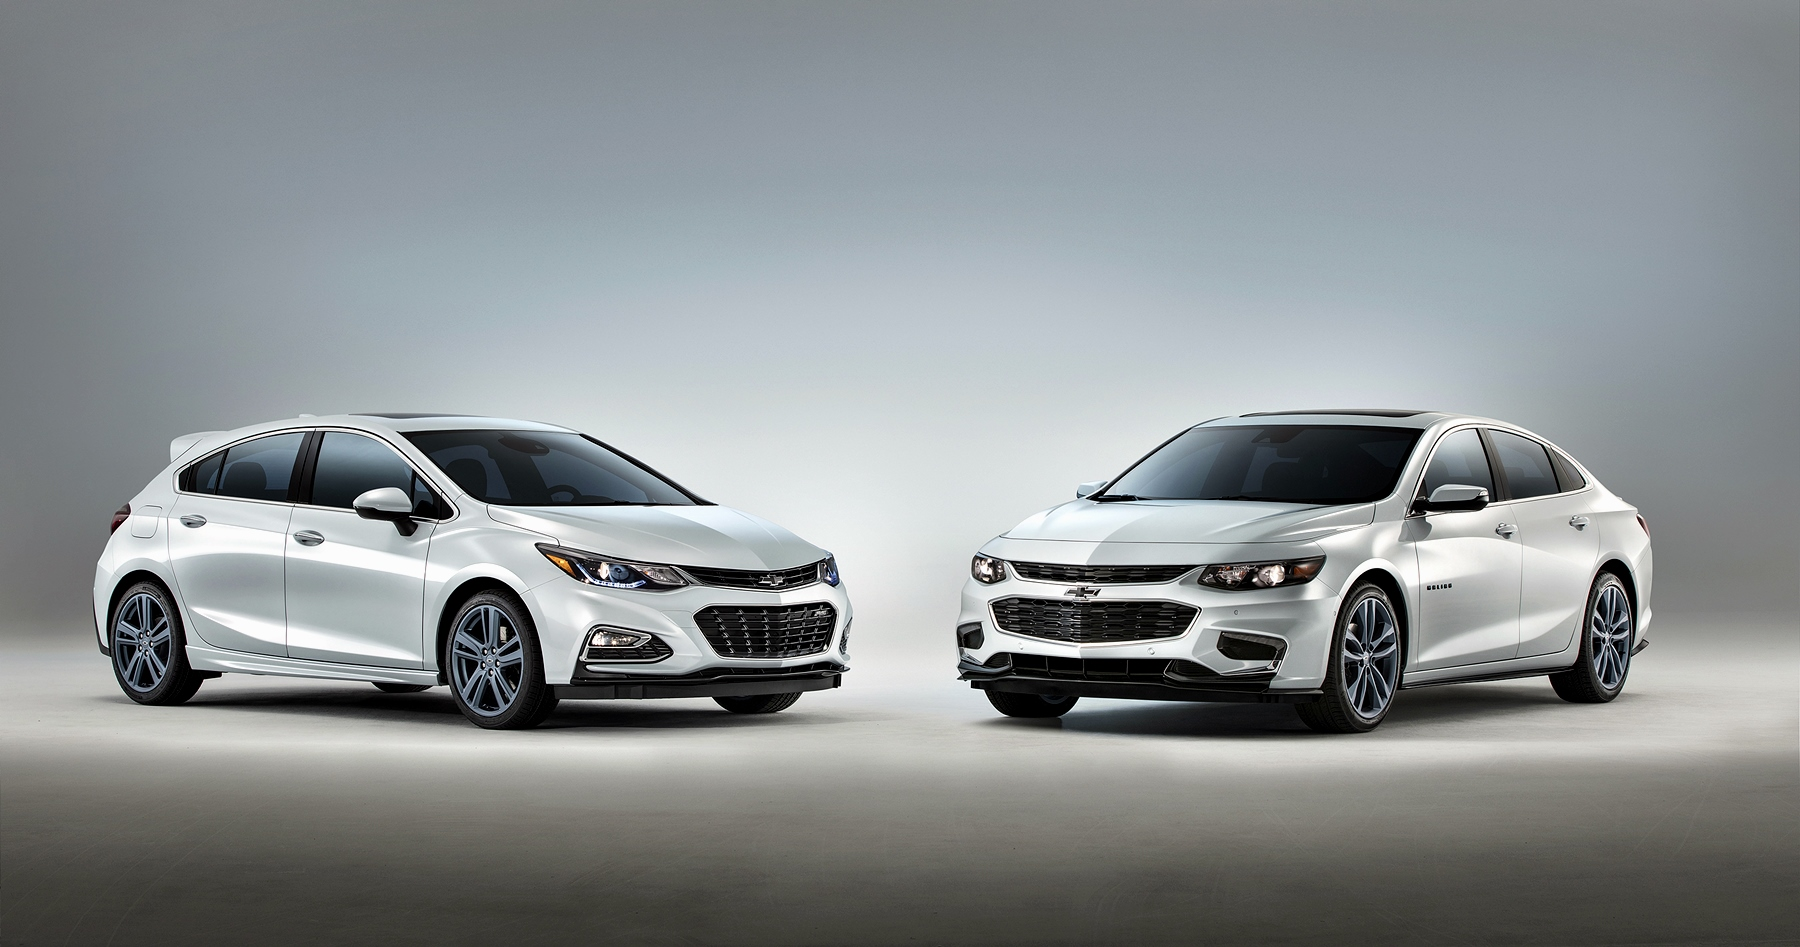 Chevrolet Malibu and cruze blueline